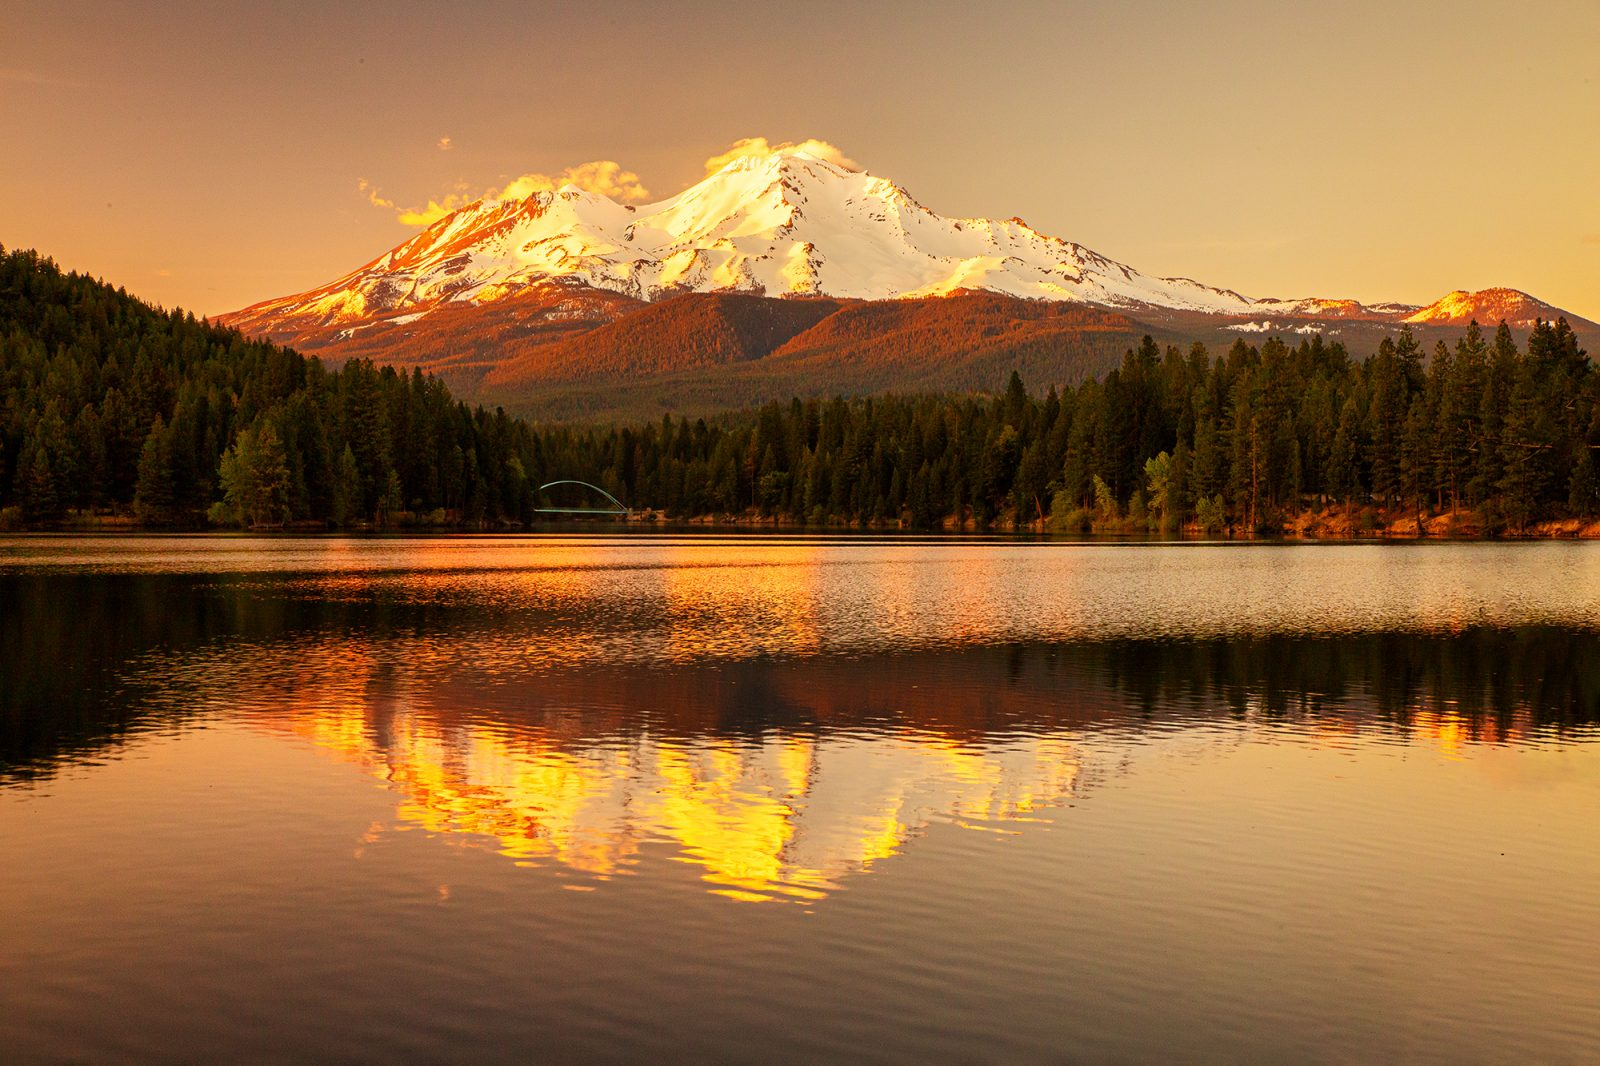 Snow-clad Mount Shasta and the forested shoreline